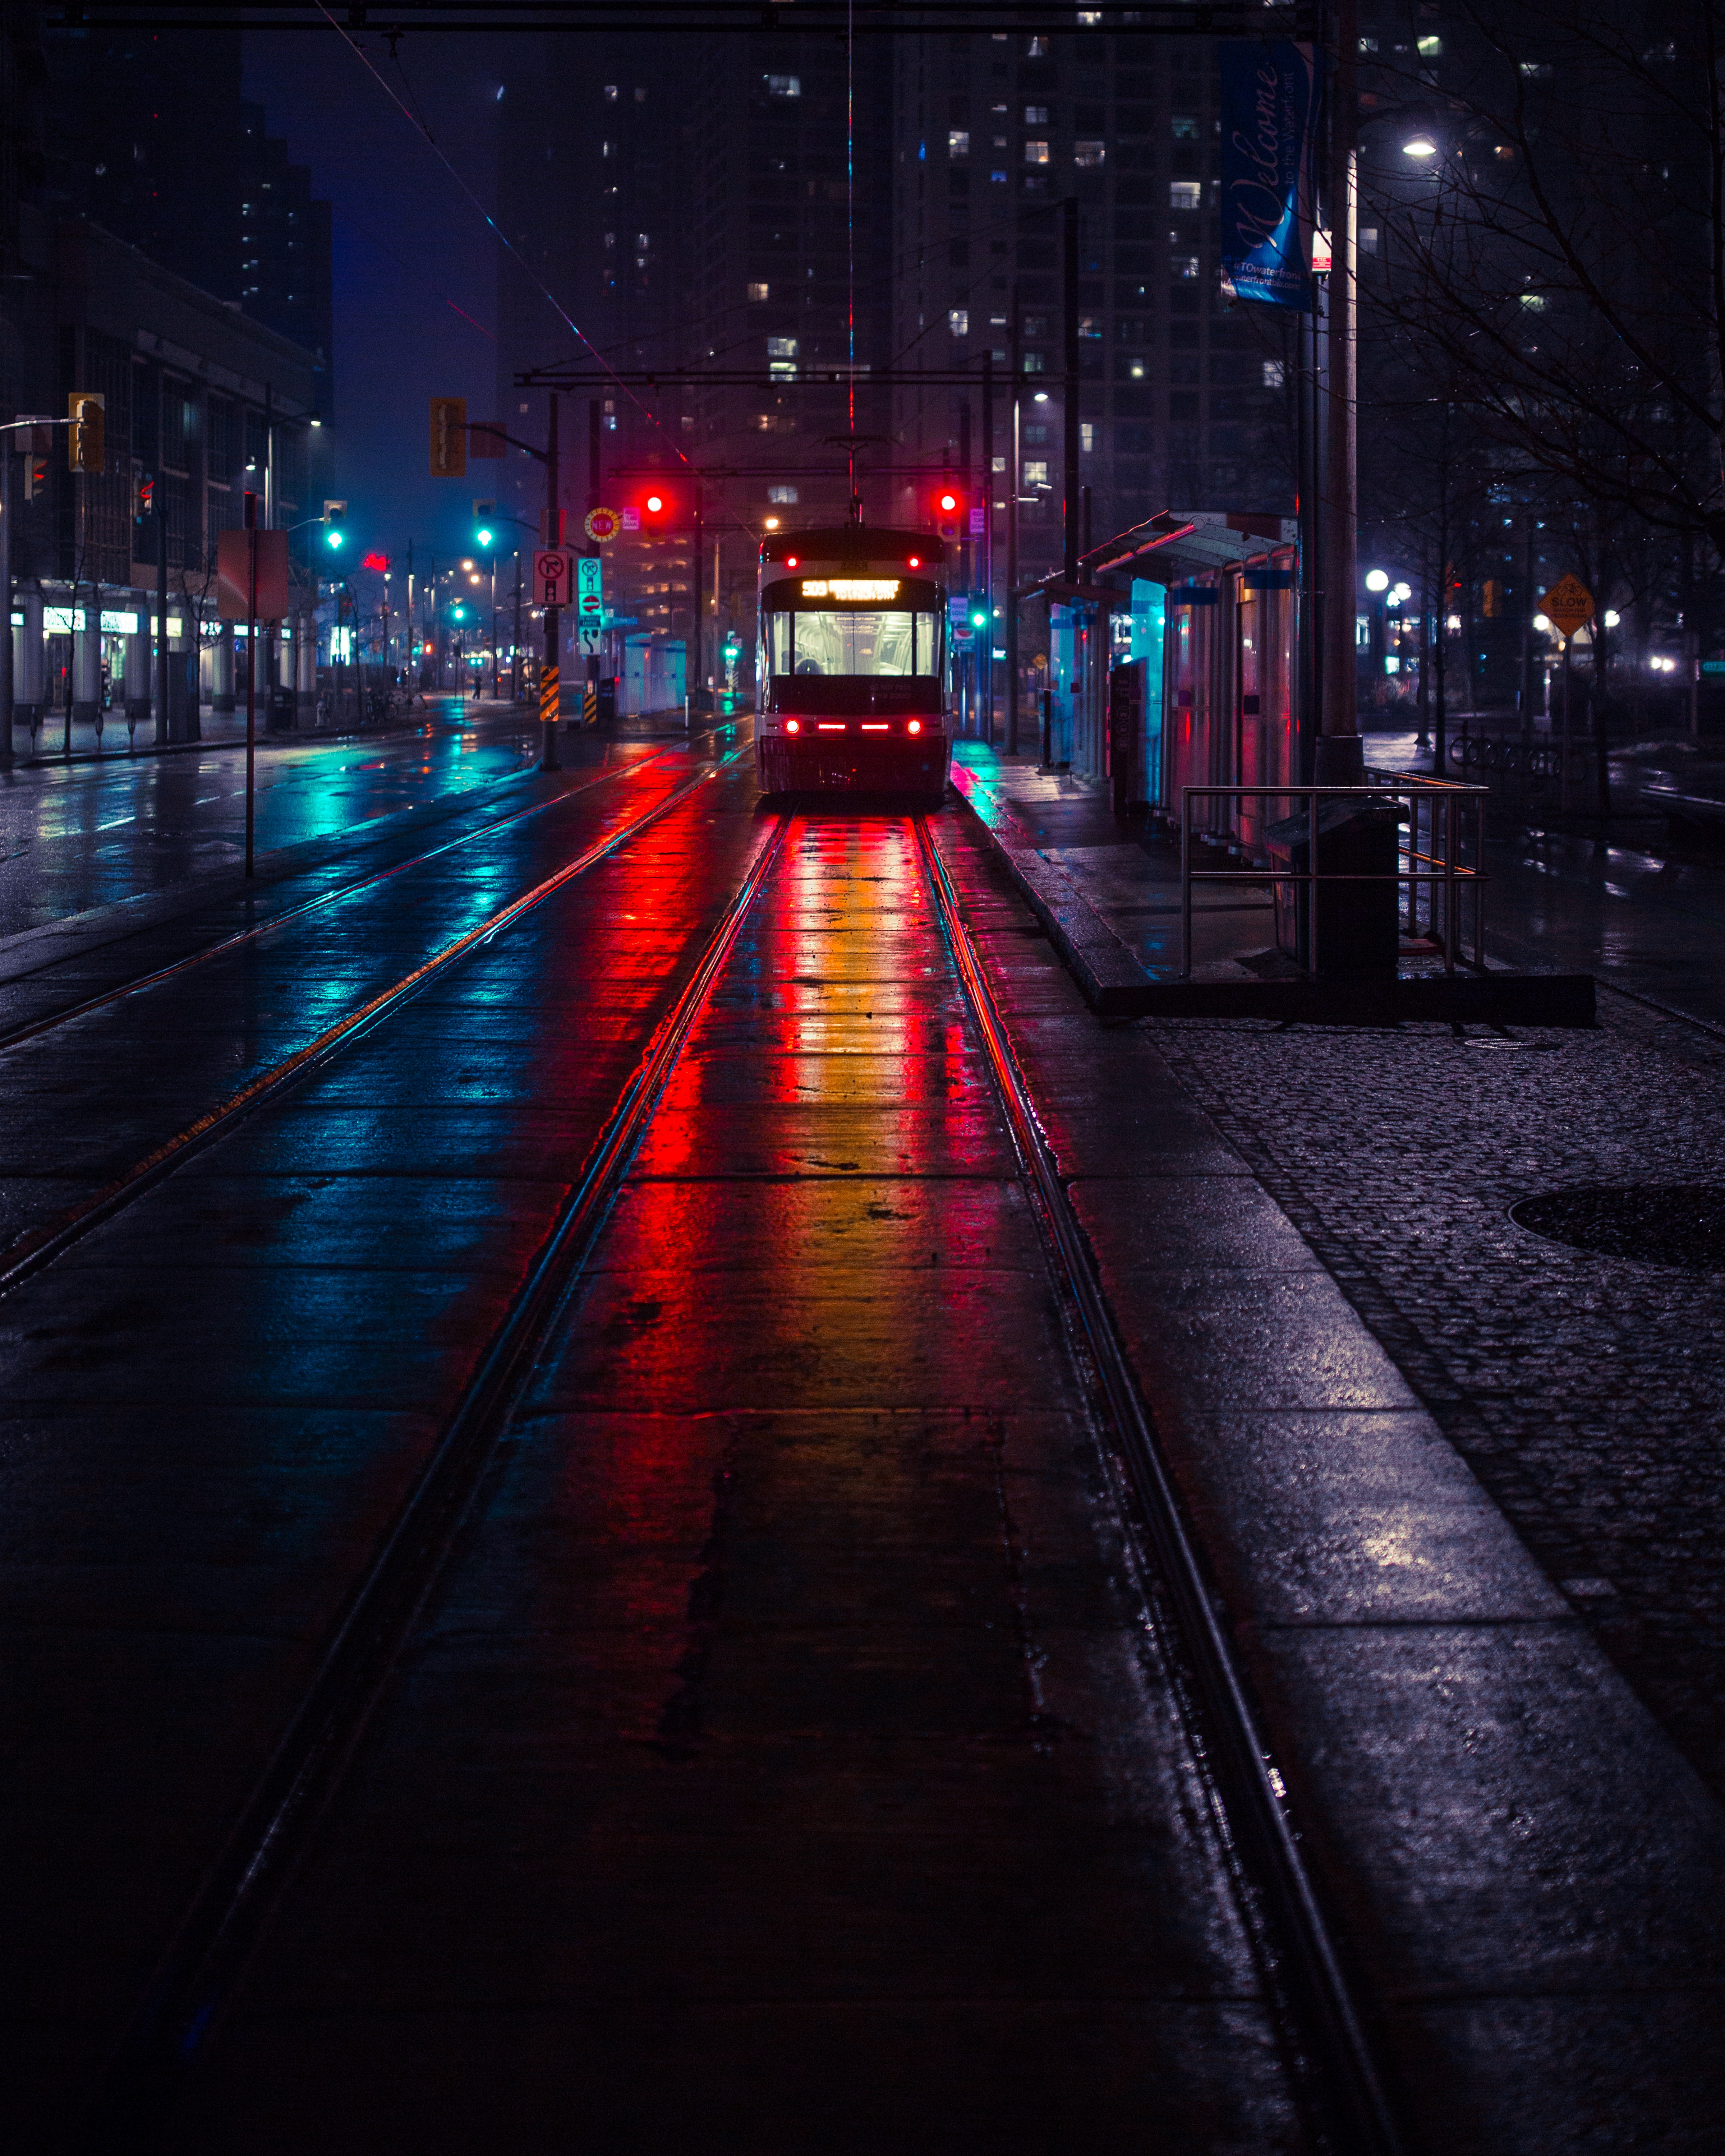 Late Nights Pictures Download Free Images On Unsplash